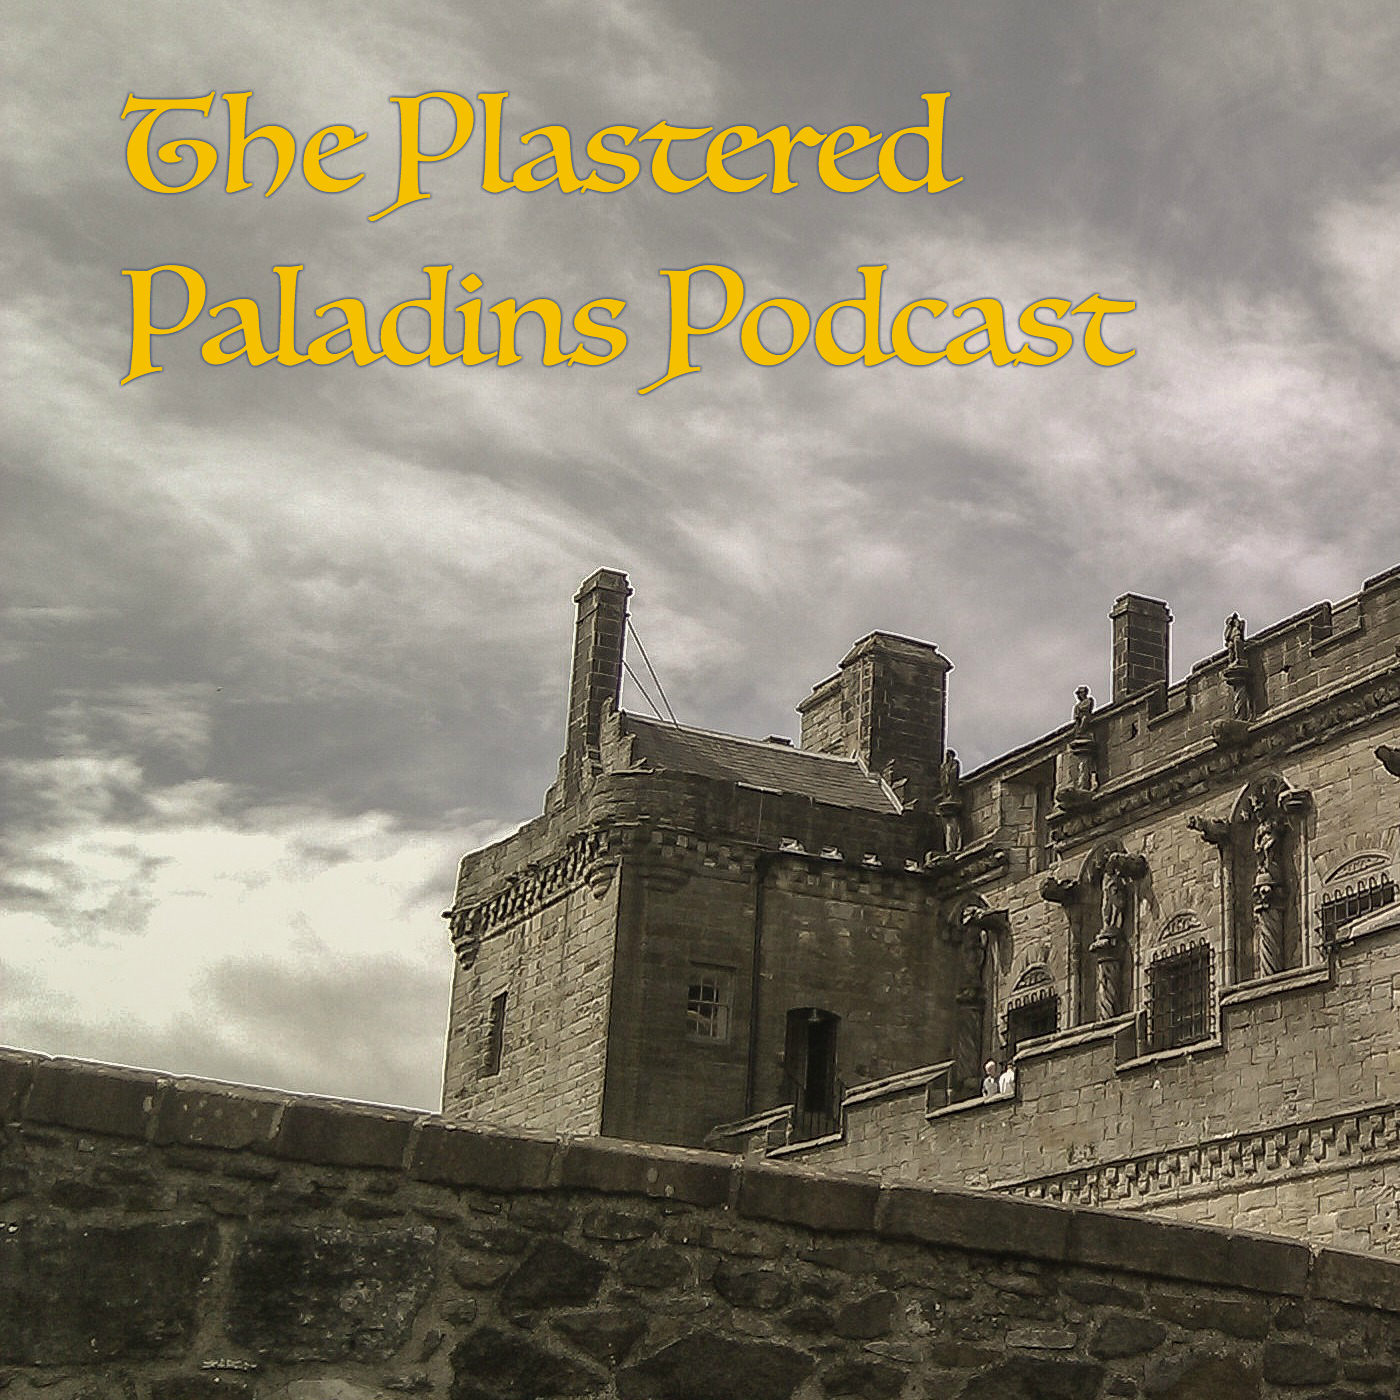 The Plastered Paladins Episode 54: Star Wars: The Last Jedi